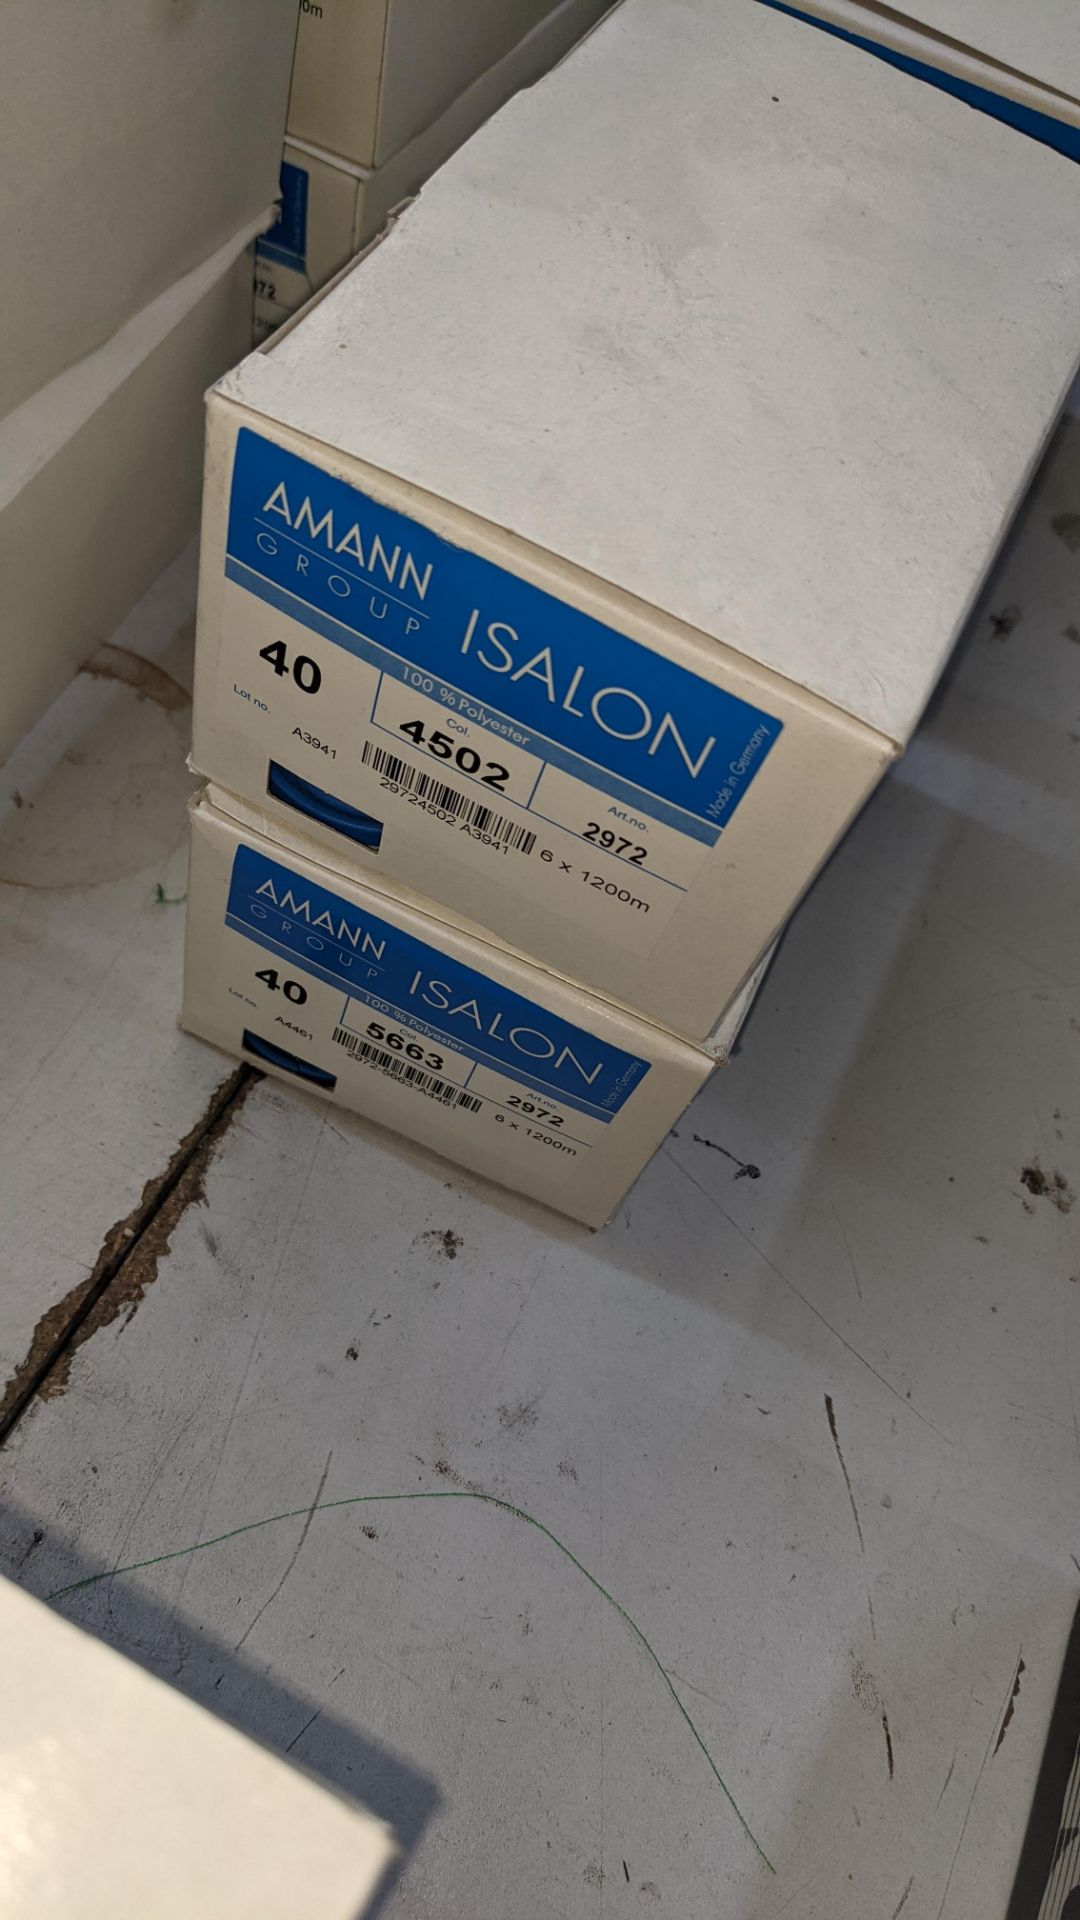 12 boxes of Amann Group ISALON 40 polyester embroidery thread - Image 4 of 9